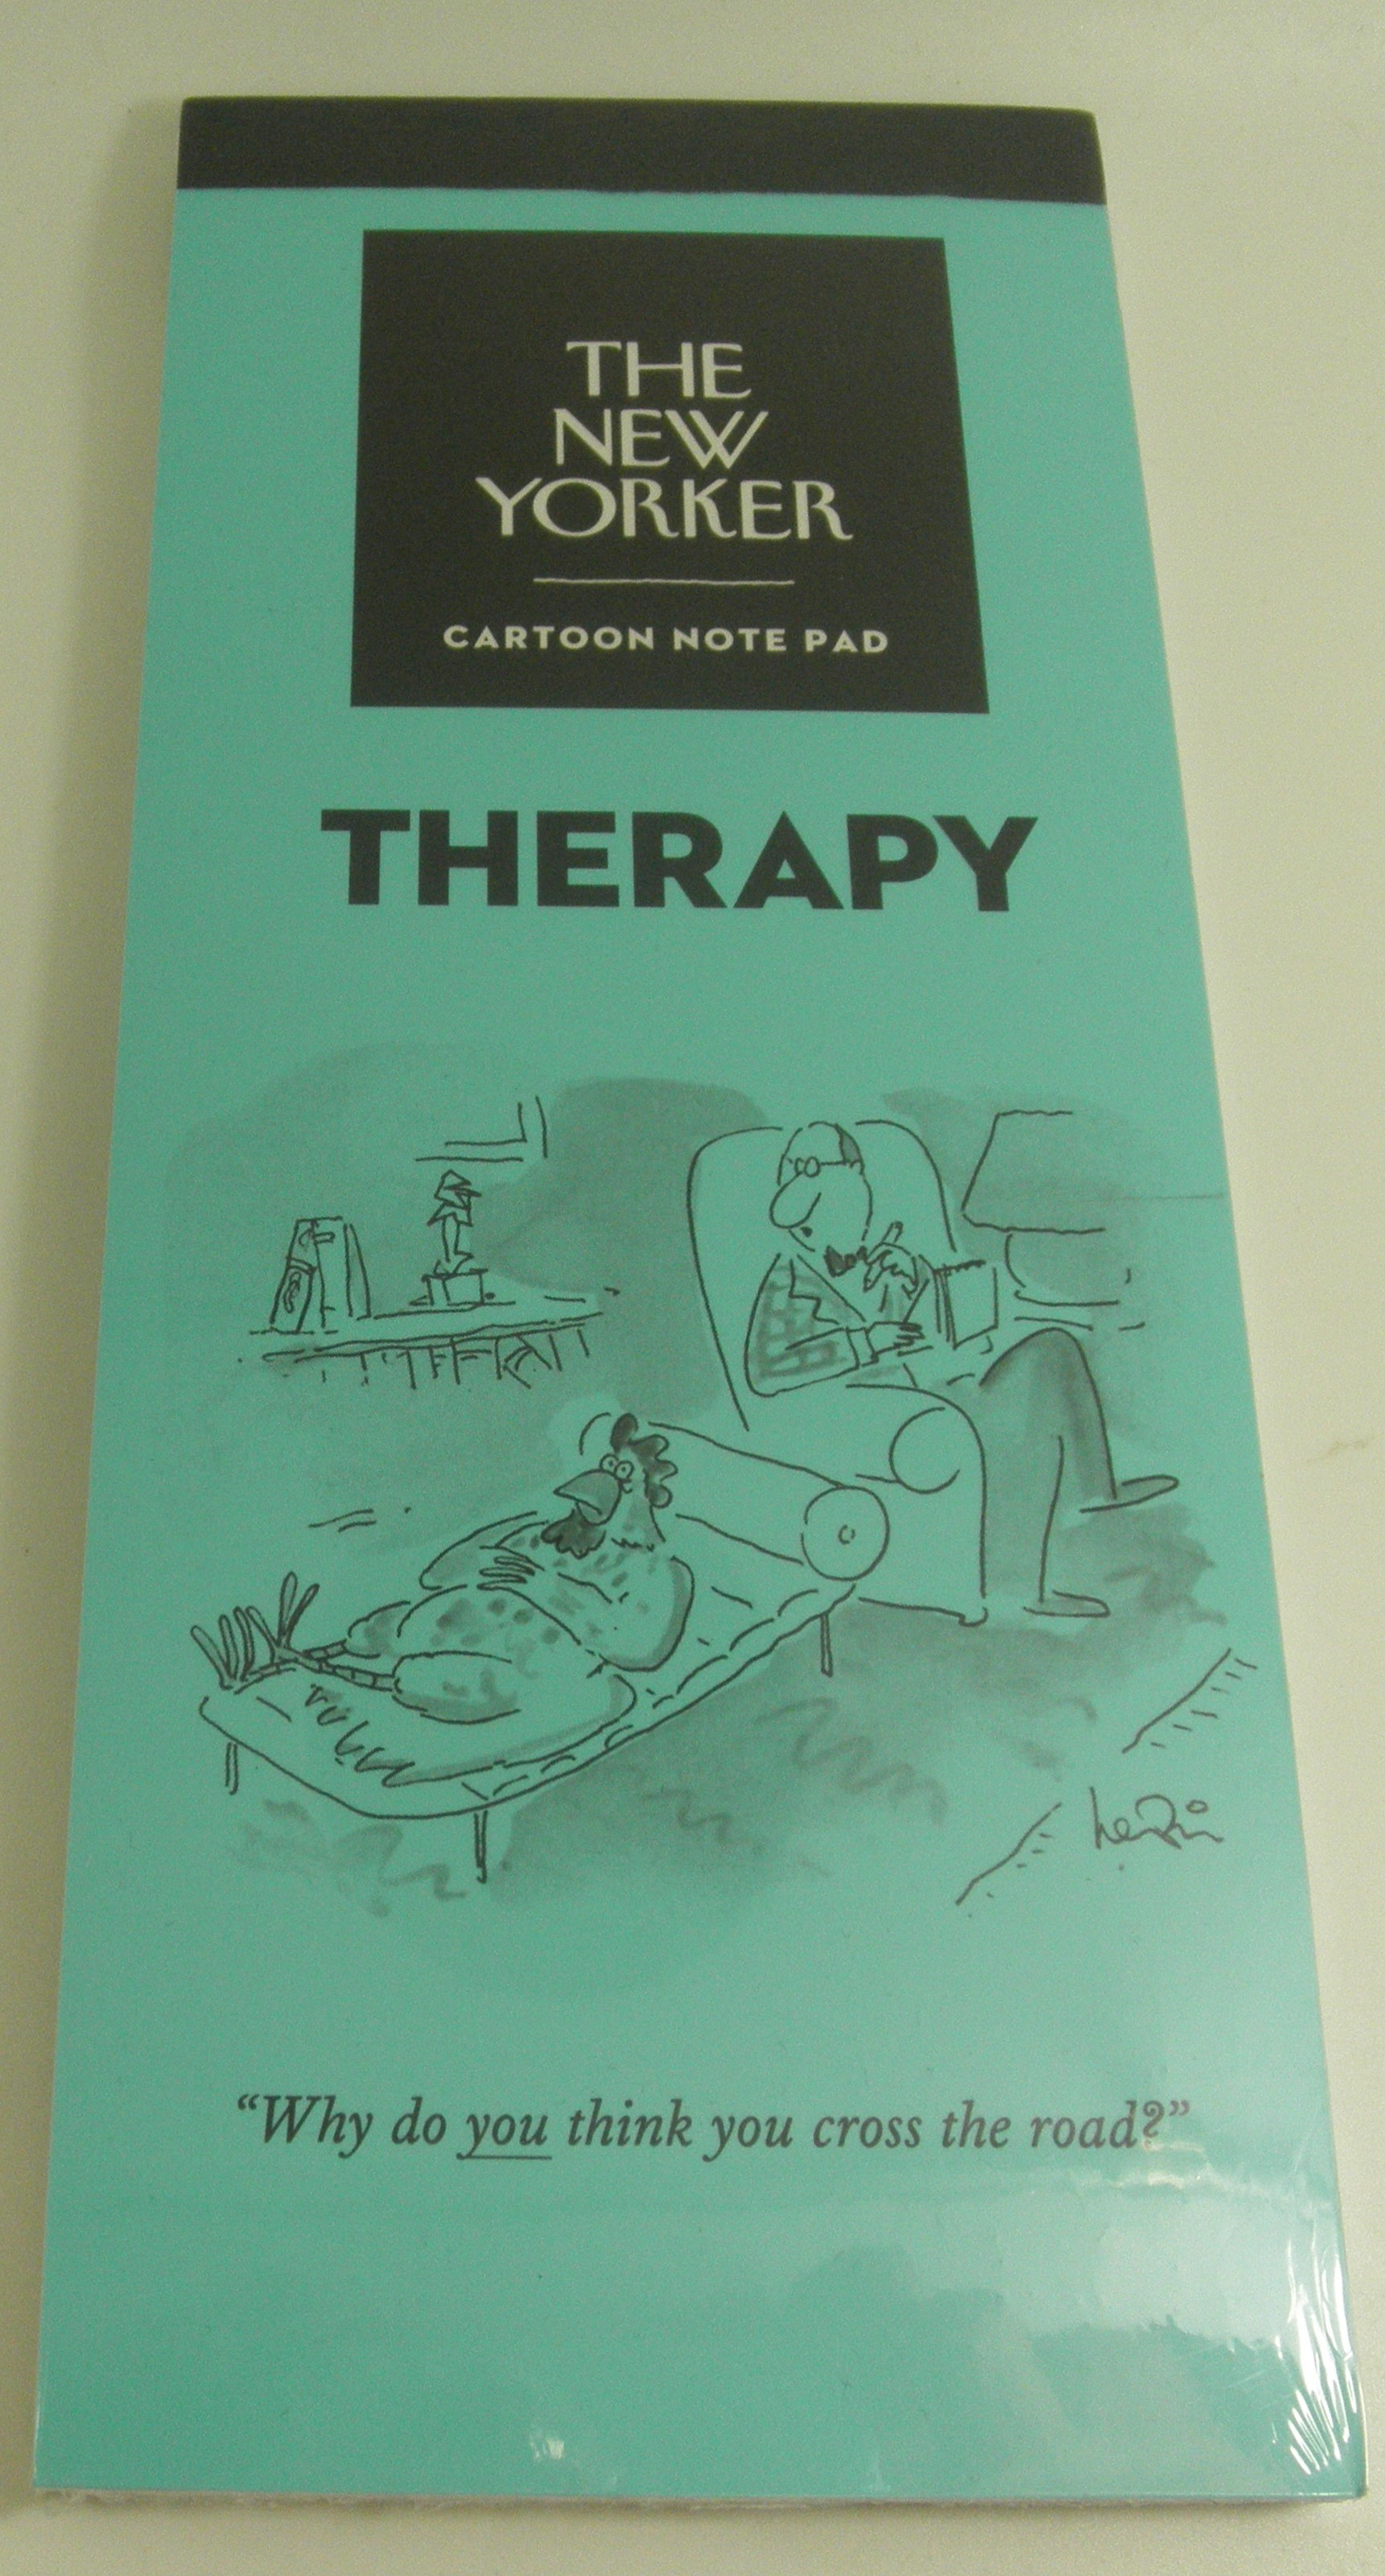 The New Yorker Cartoon Notepad Therapy